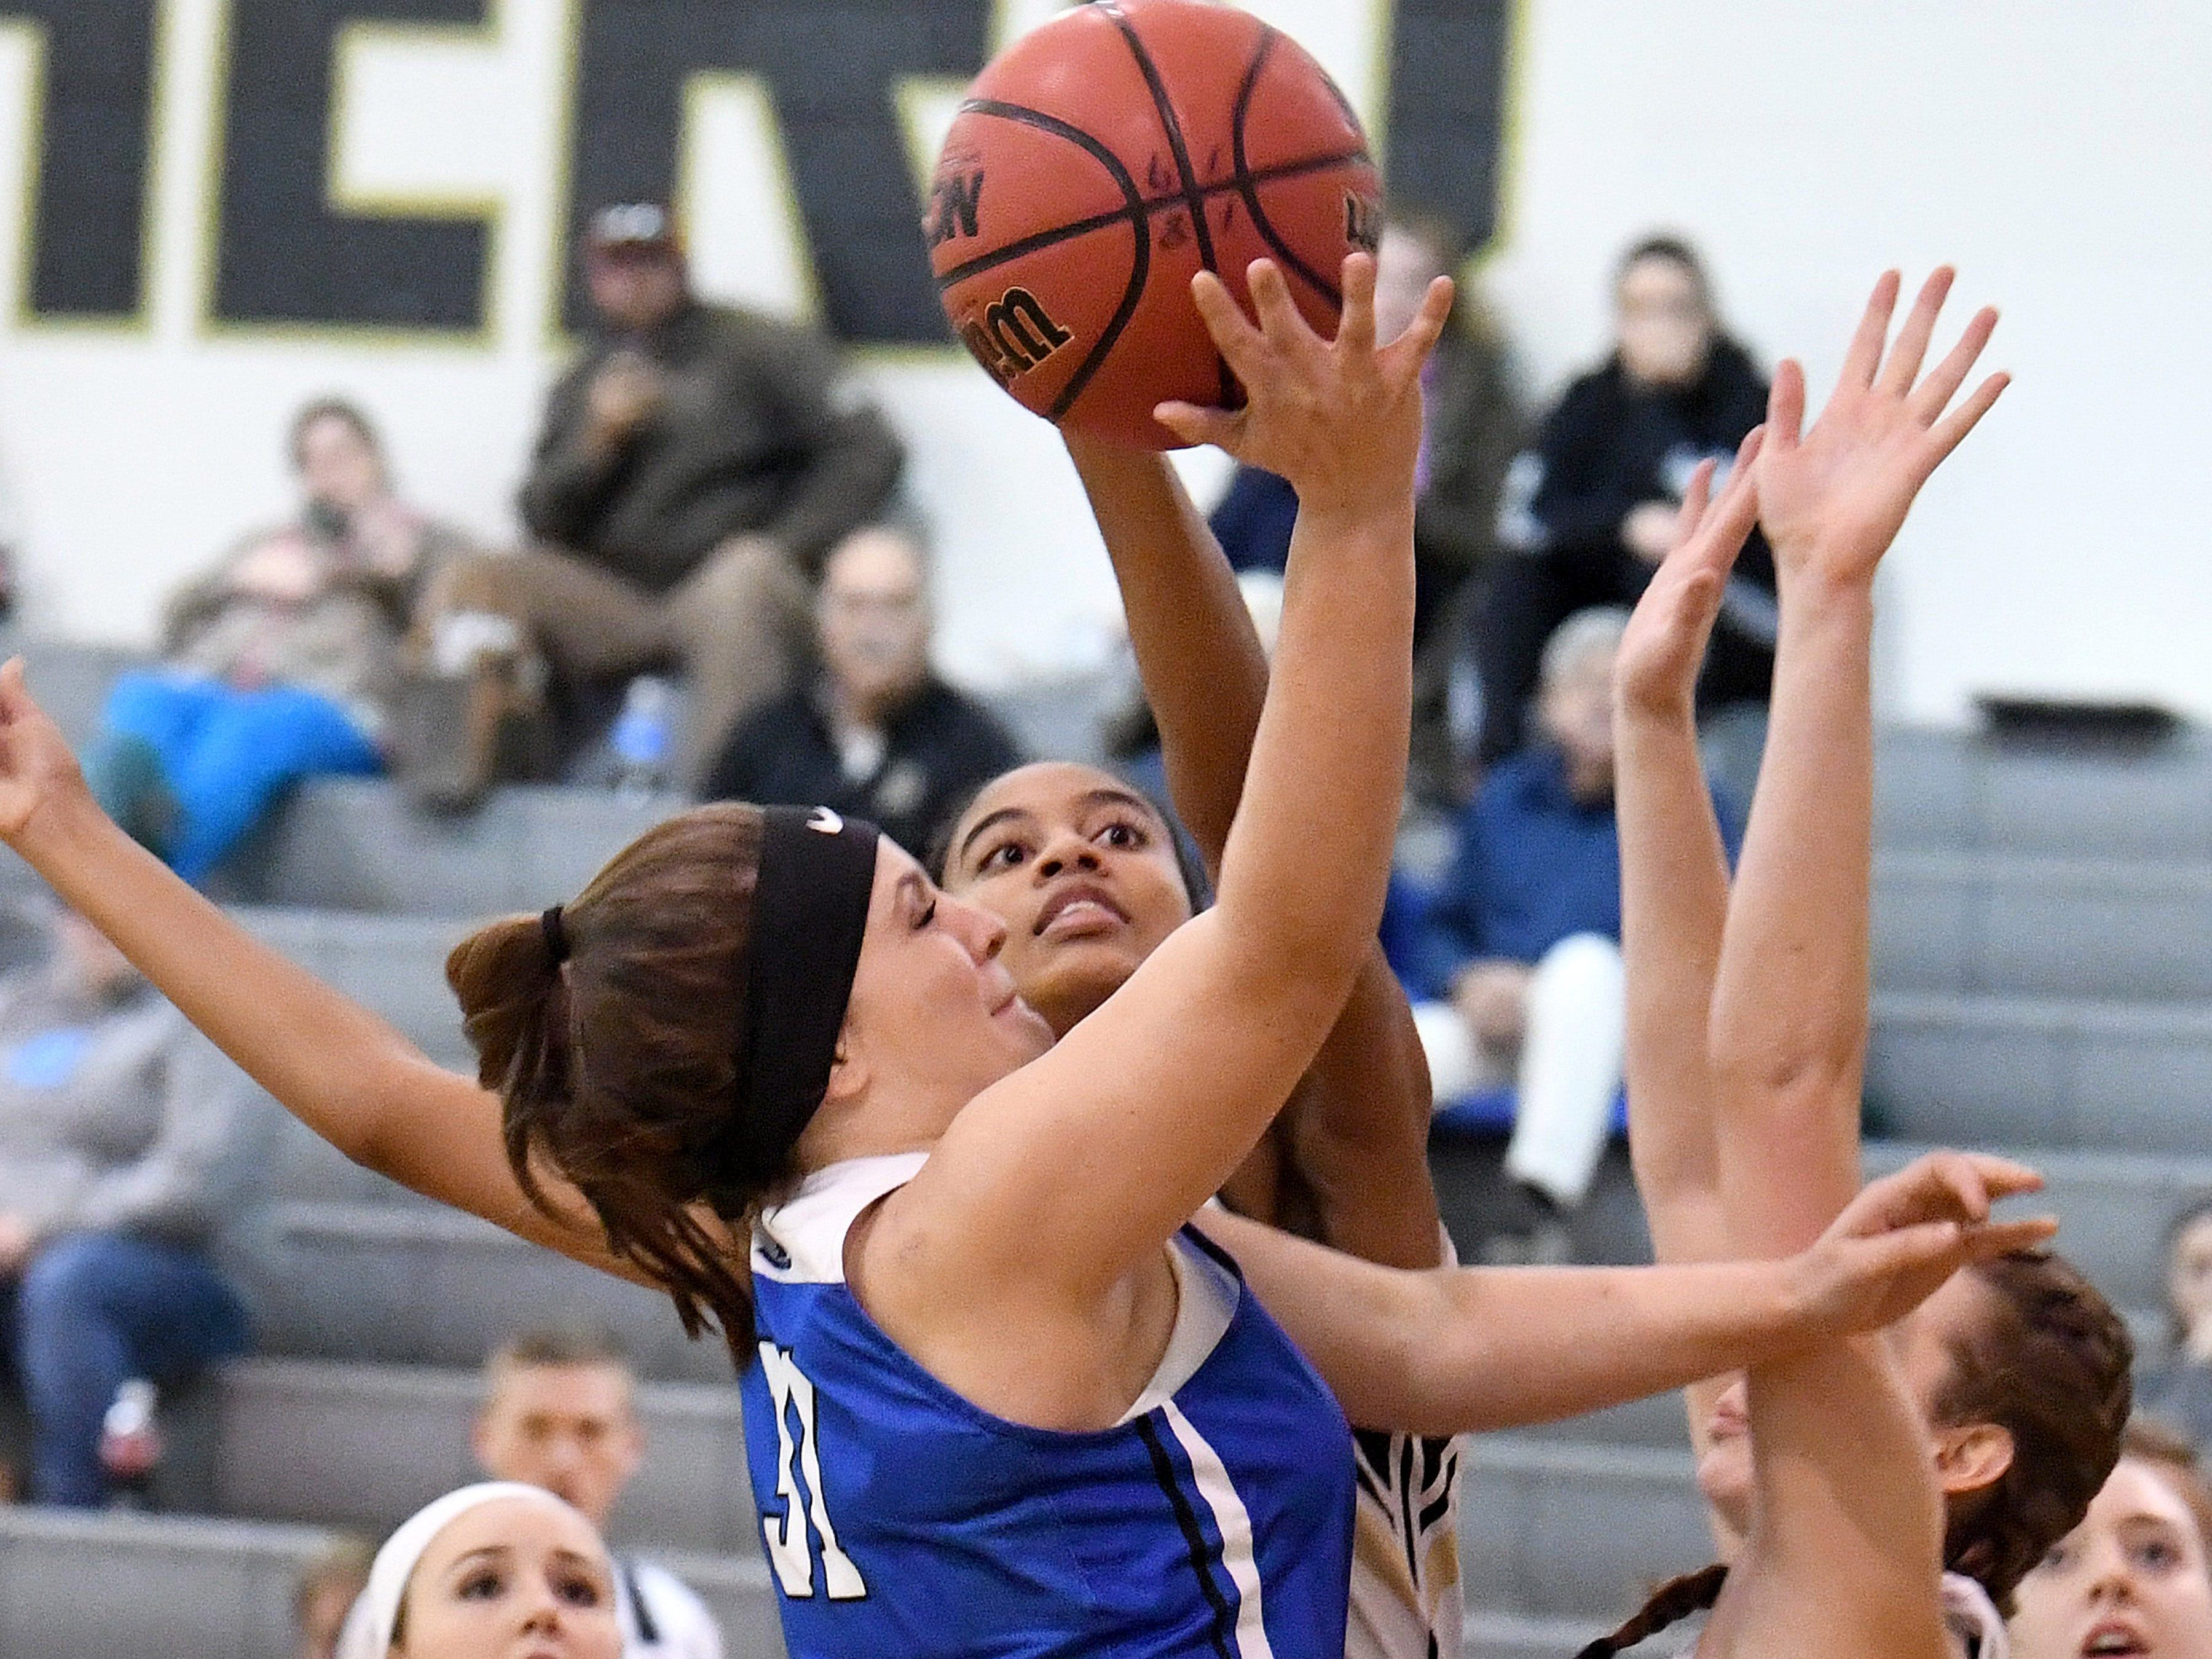 Buffalo Gap's Amaya Lucas (center) looks to block a shot by Fort Defiance's Cailin Wright (left) who tries to reach the basket with the ball during a game played in Swoope on Wednesday, Dec. 5, 2018.